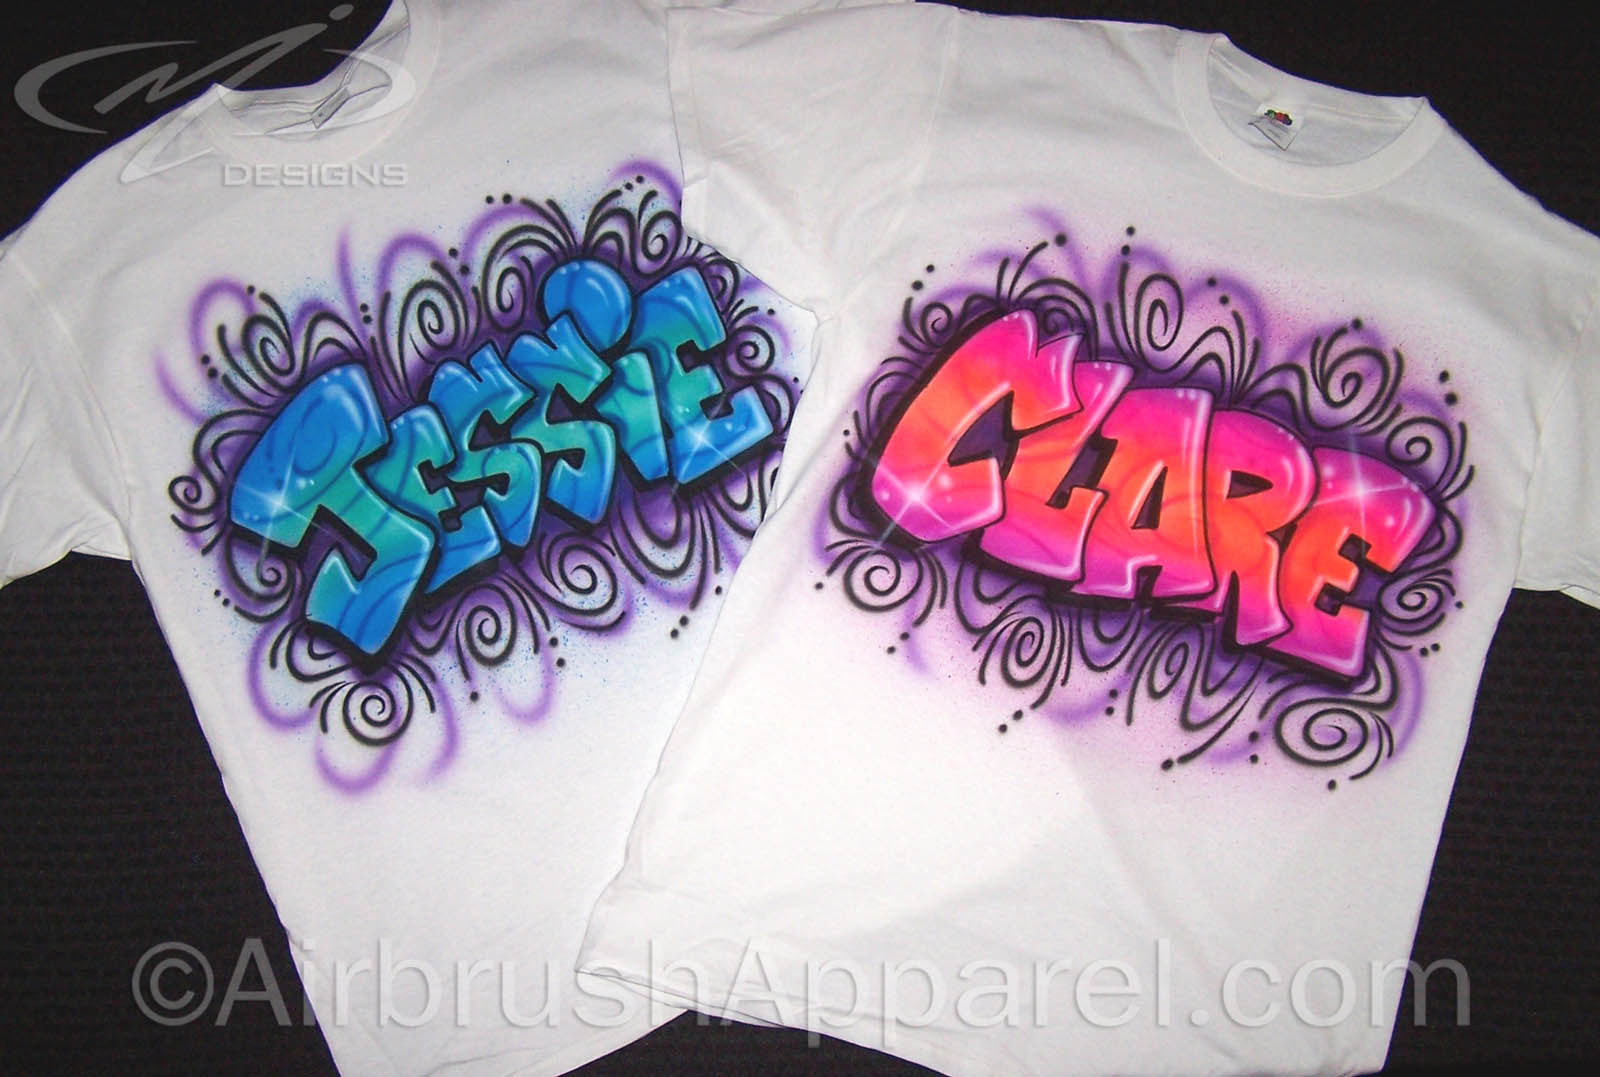 Freestyle Graffiti Name Design With Crazy Swirled Background